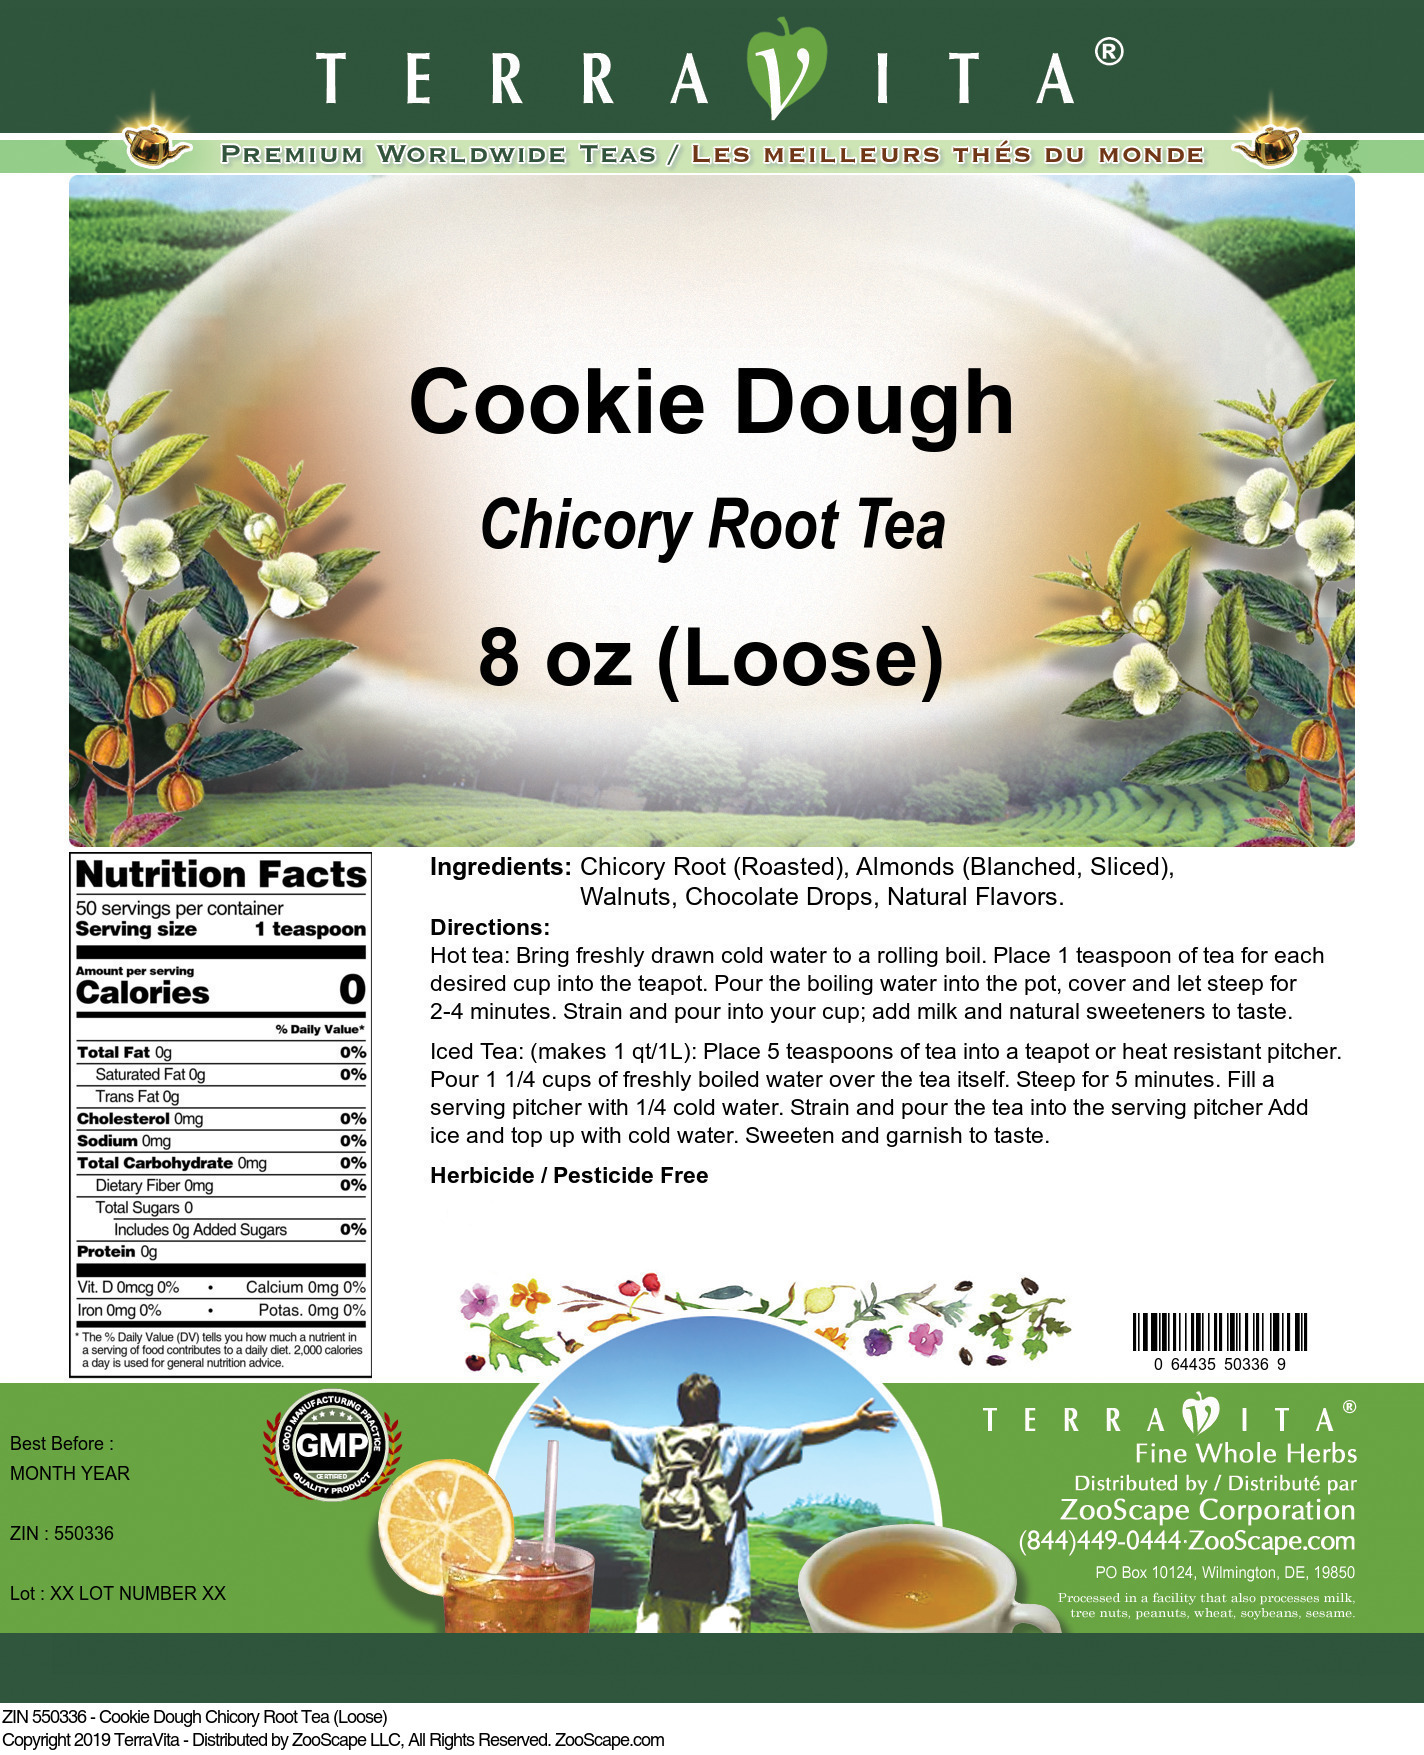 Cookie Dough Chicory Root